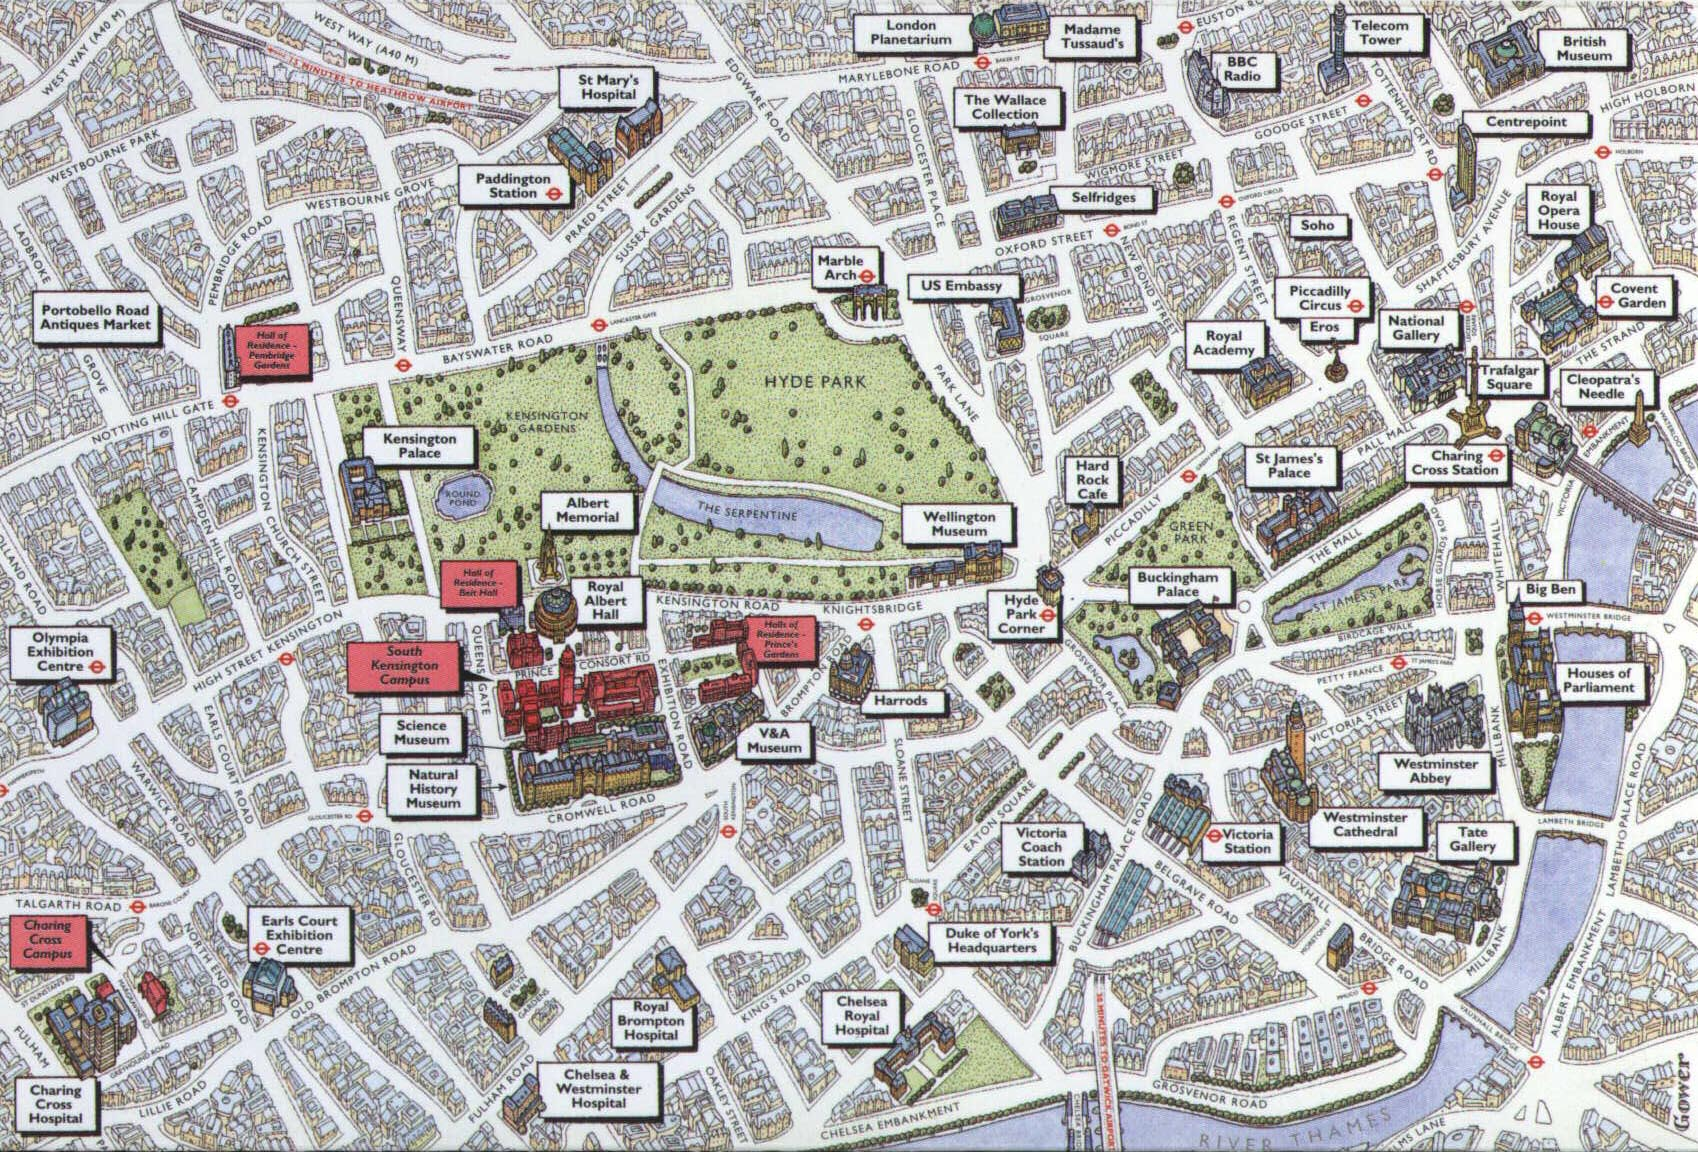 World Congress On Engineering - London map pdf 2015